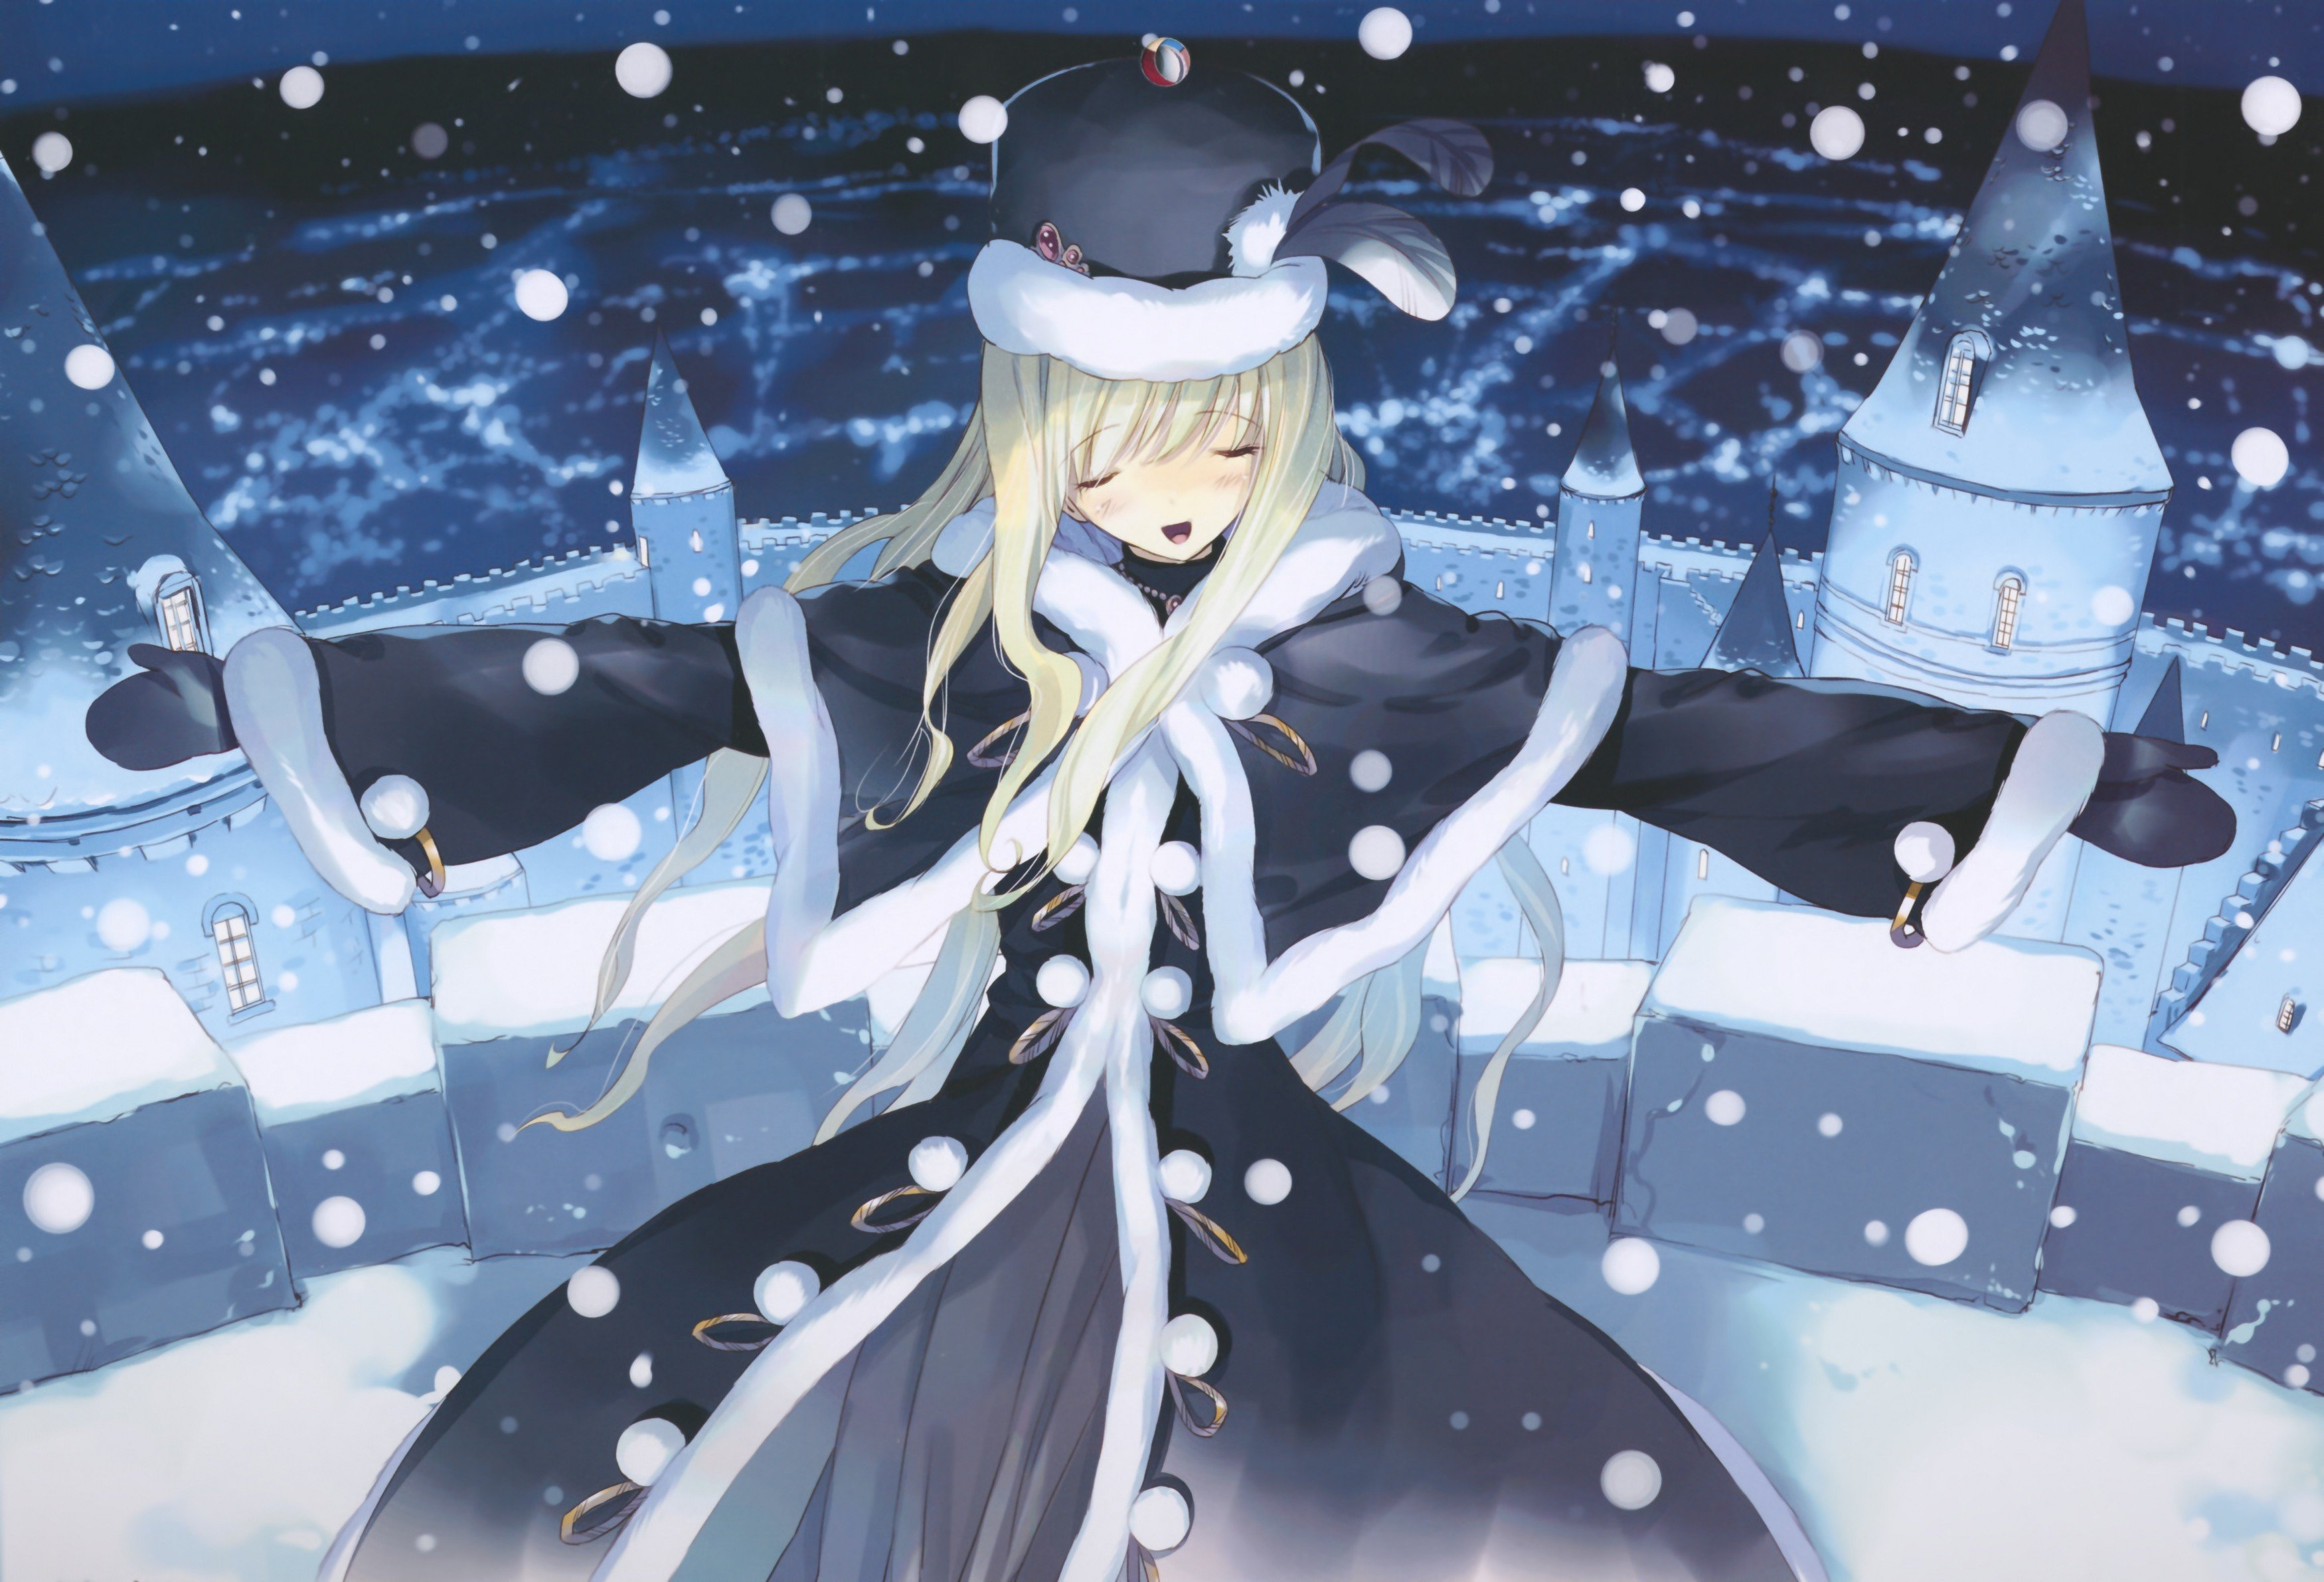 Winter Snow Anime Girls Alice In Wonderland Hd Wallpapers Desktop And Mobile Images Photos